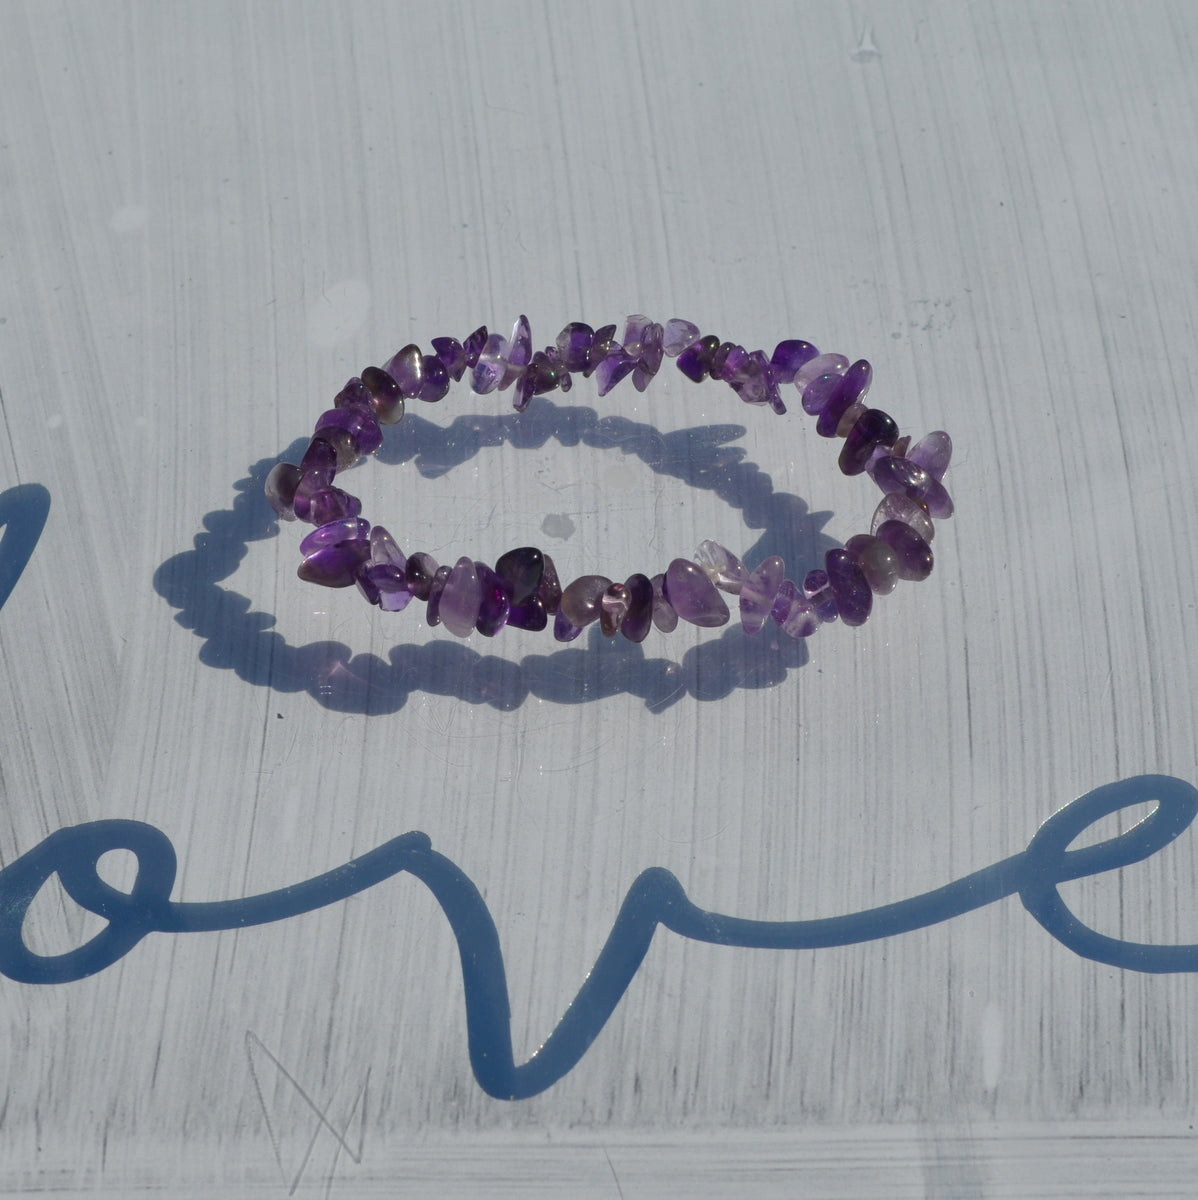 Amethyst Chip Necklace and Bracelet Set - Available Now at Illiom Crystals - We Have Afterpay